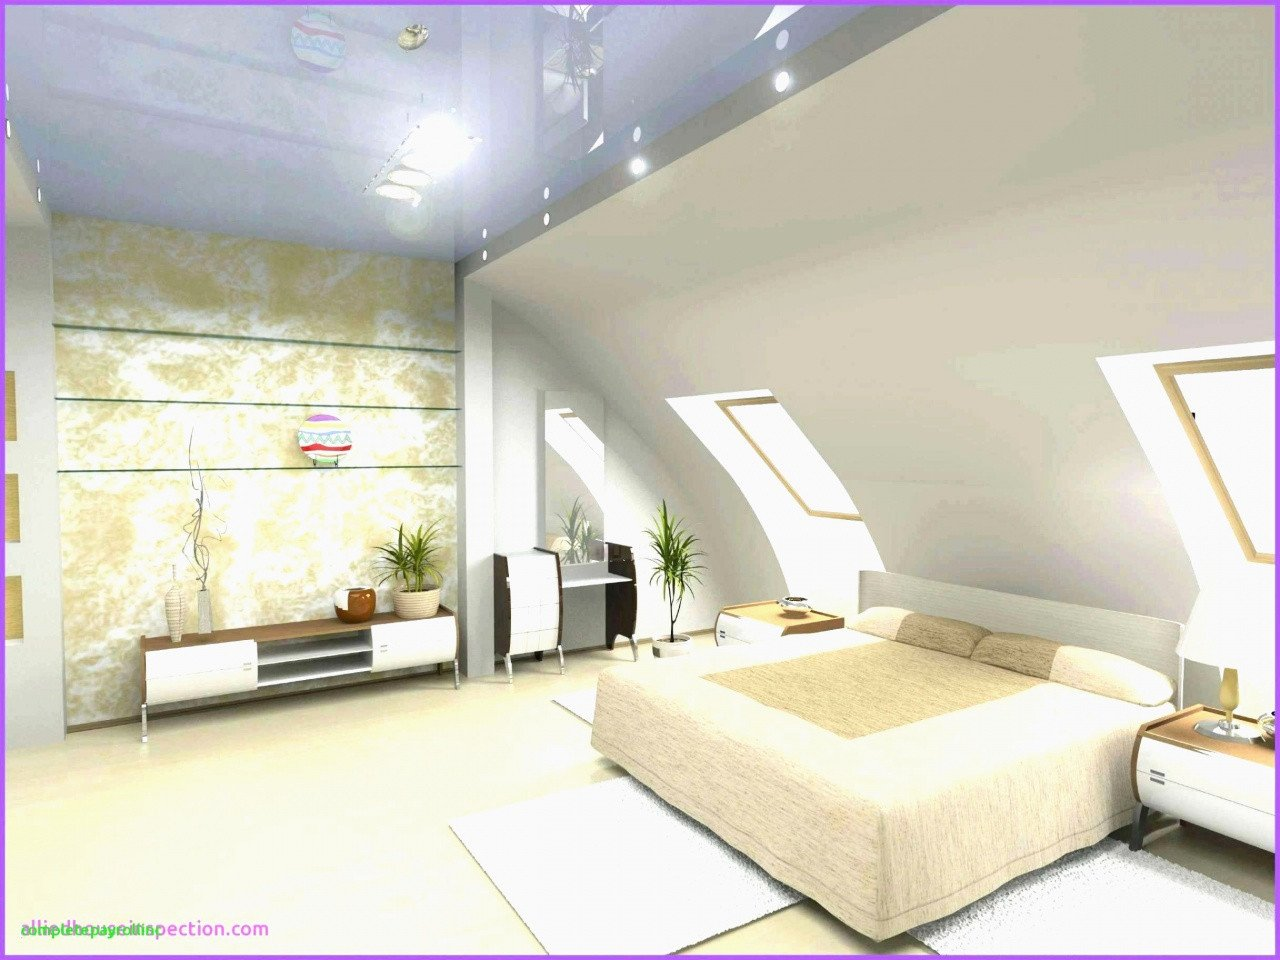 Full Bedroom Furniture Set Inspirational Teenage Bedroom Furniture for Small Rooms – the New Daily